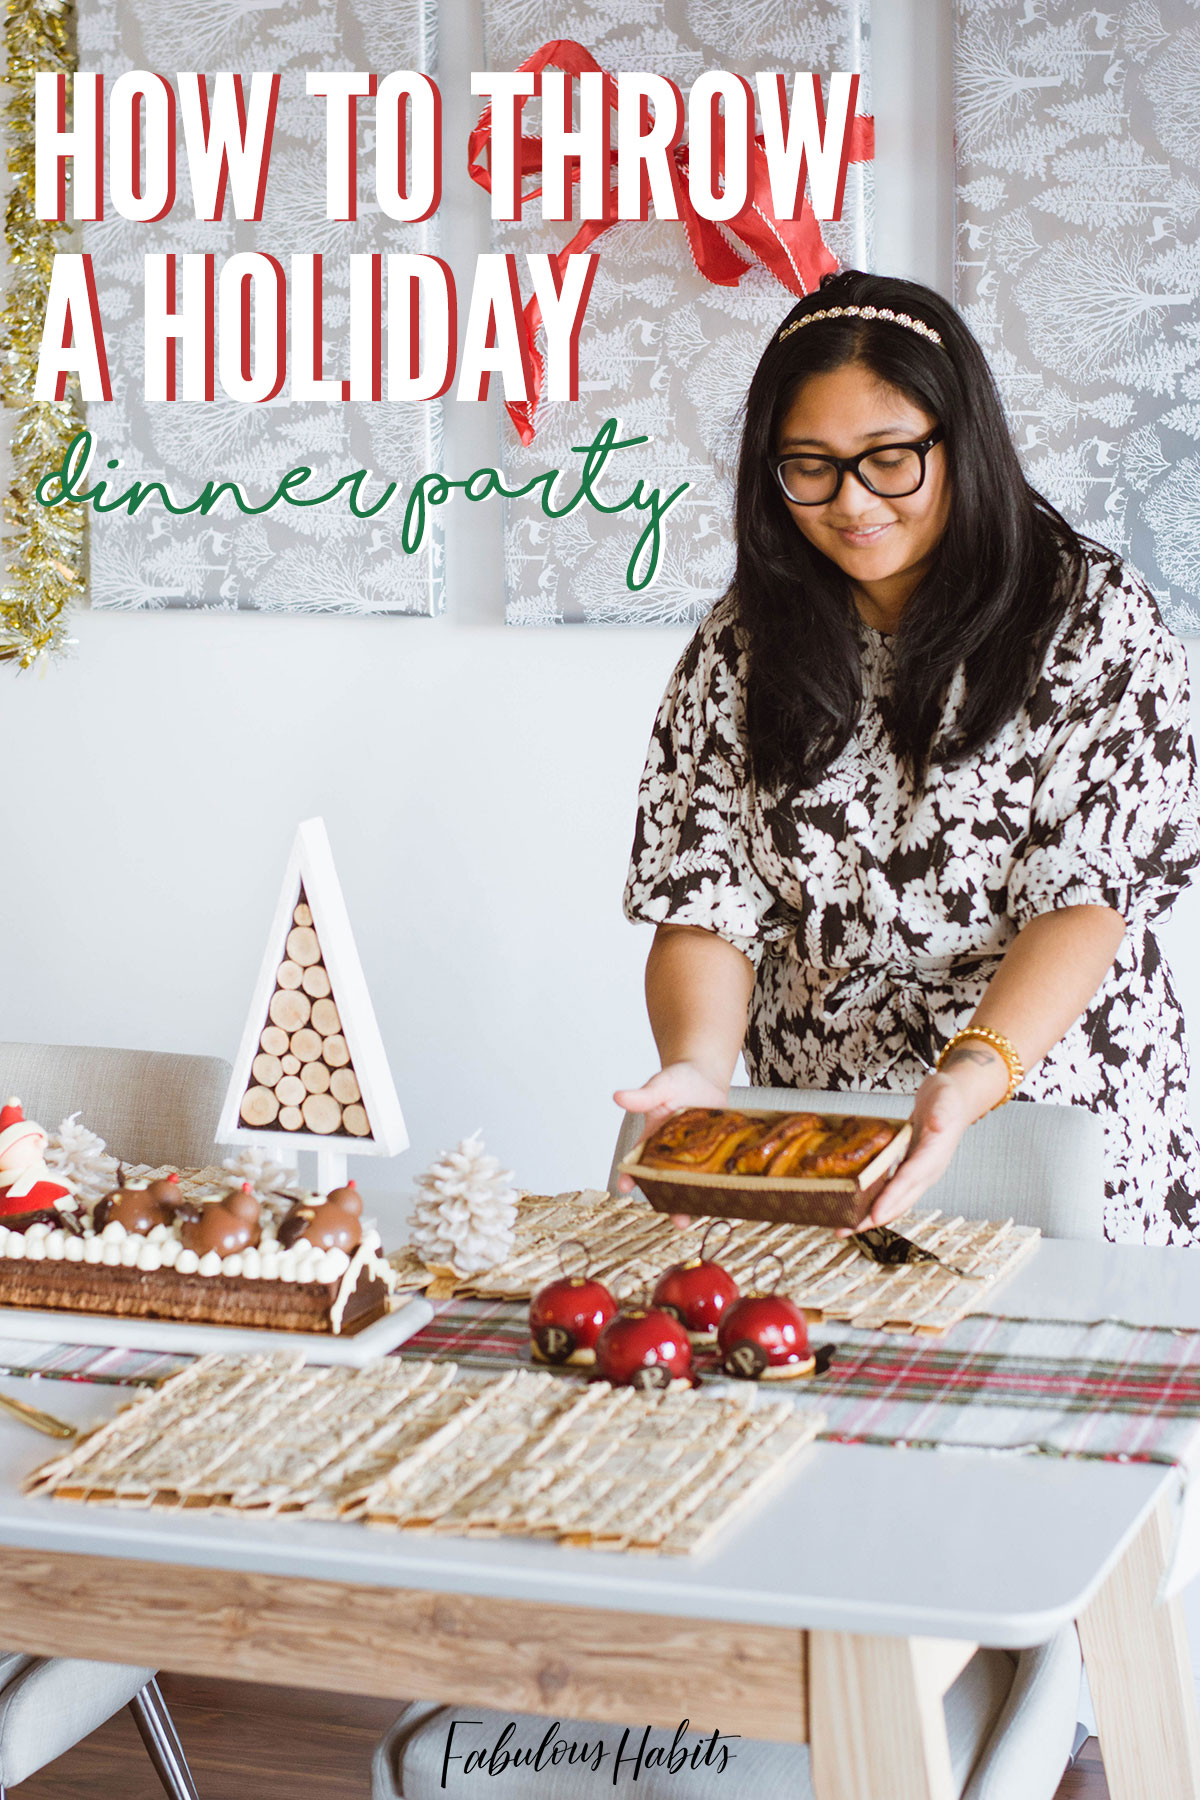 Playing host/hostess this year? Here are my surefire tips on how to host a holiday dinner party - without any of the stress! #holidaydinnerparty